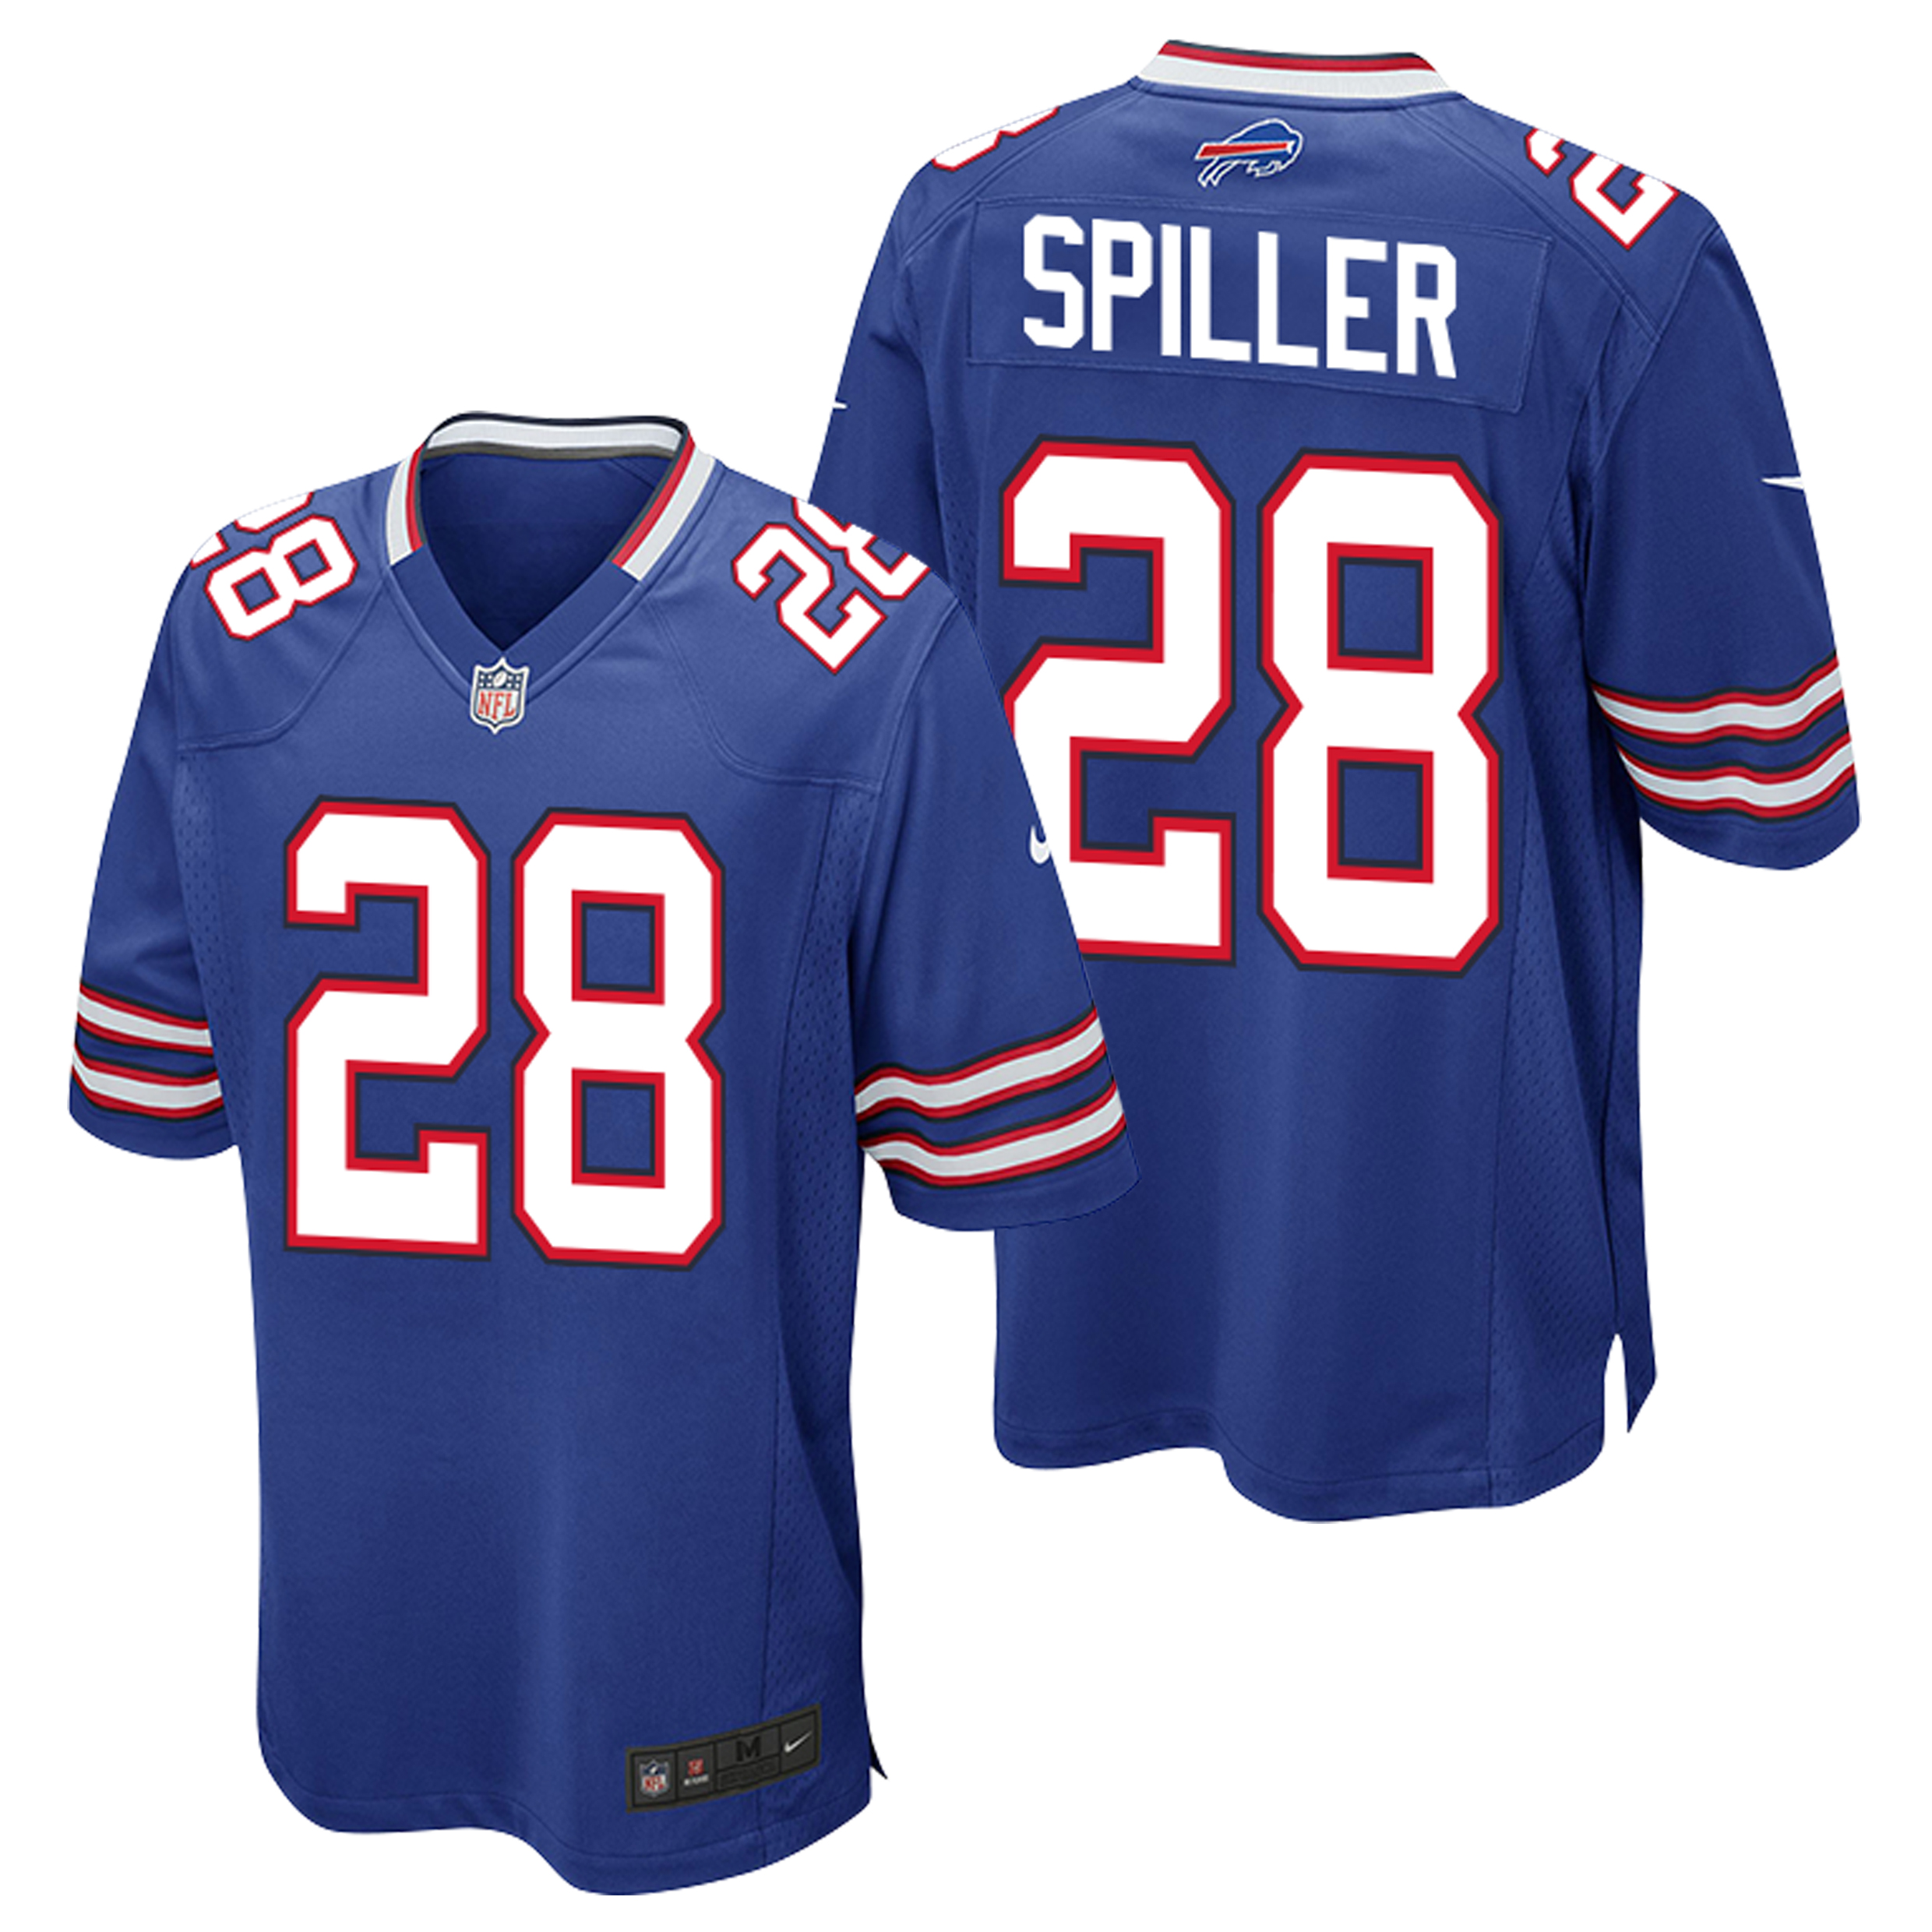 Buffalo Bills Home Game Jersey - CJ Spiller